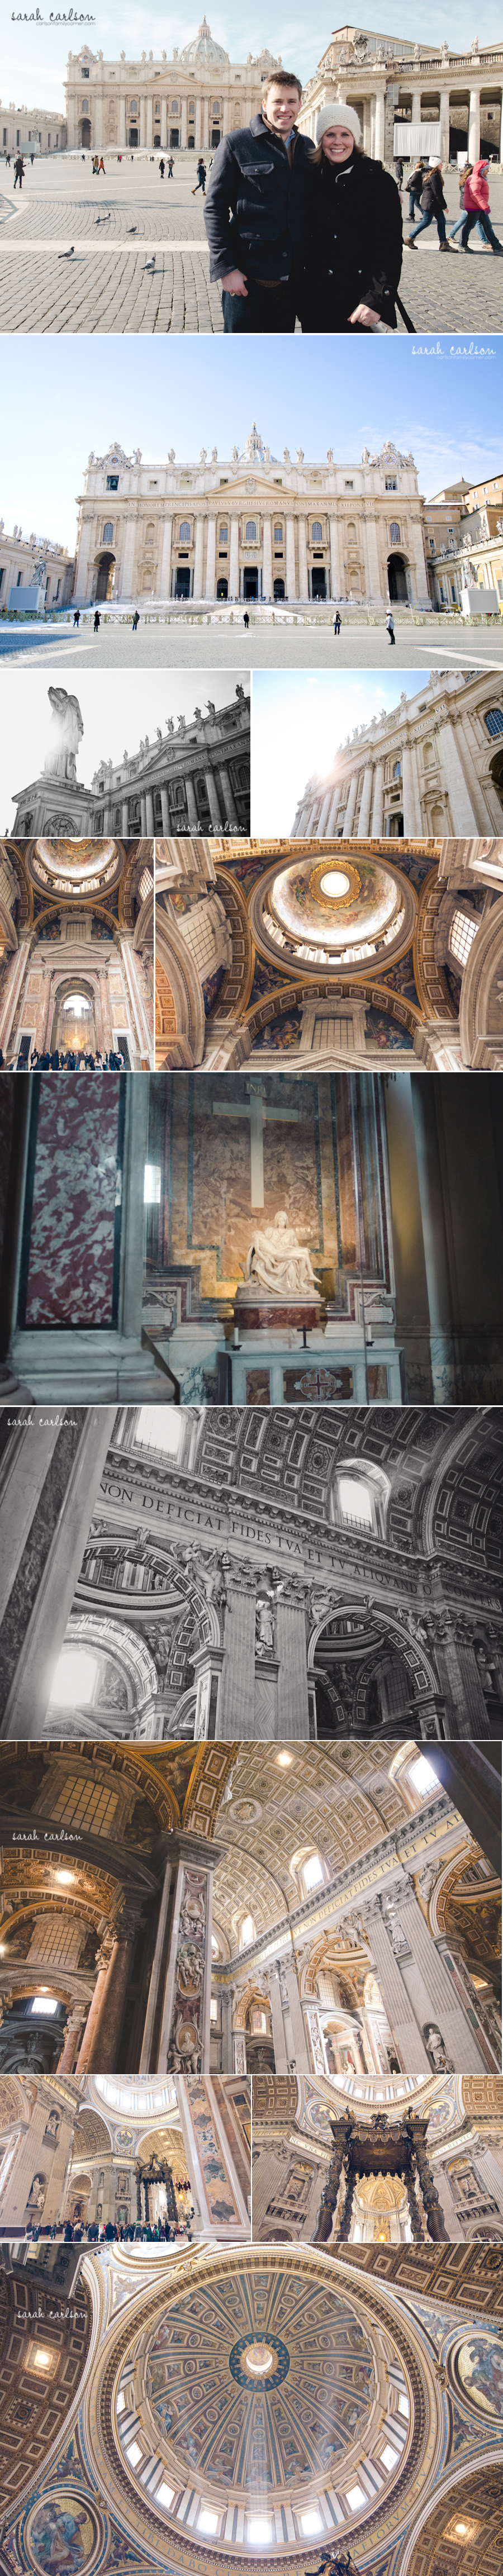 rome-day-2-storyboard-3